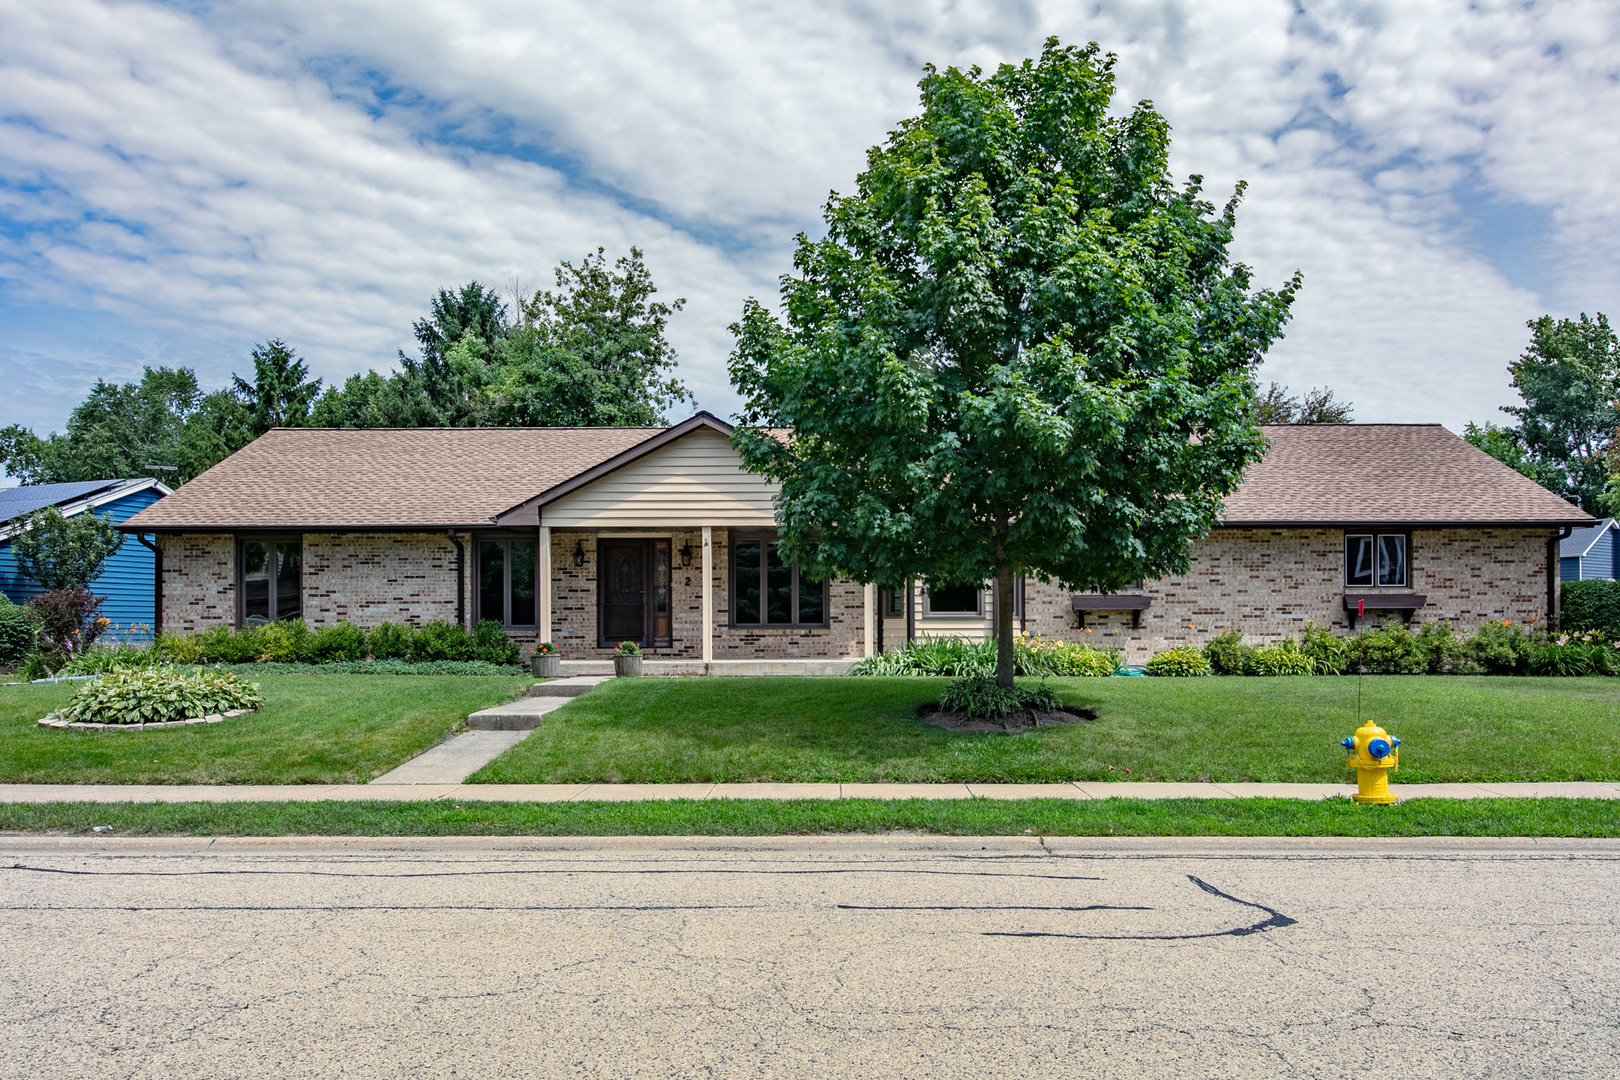 2 Portside, Third Lake, Illinois, 60030